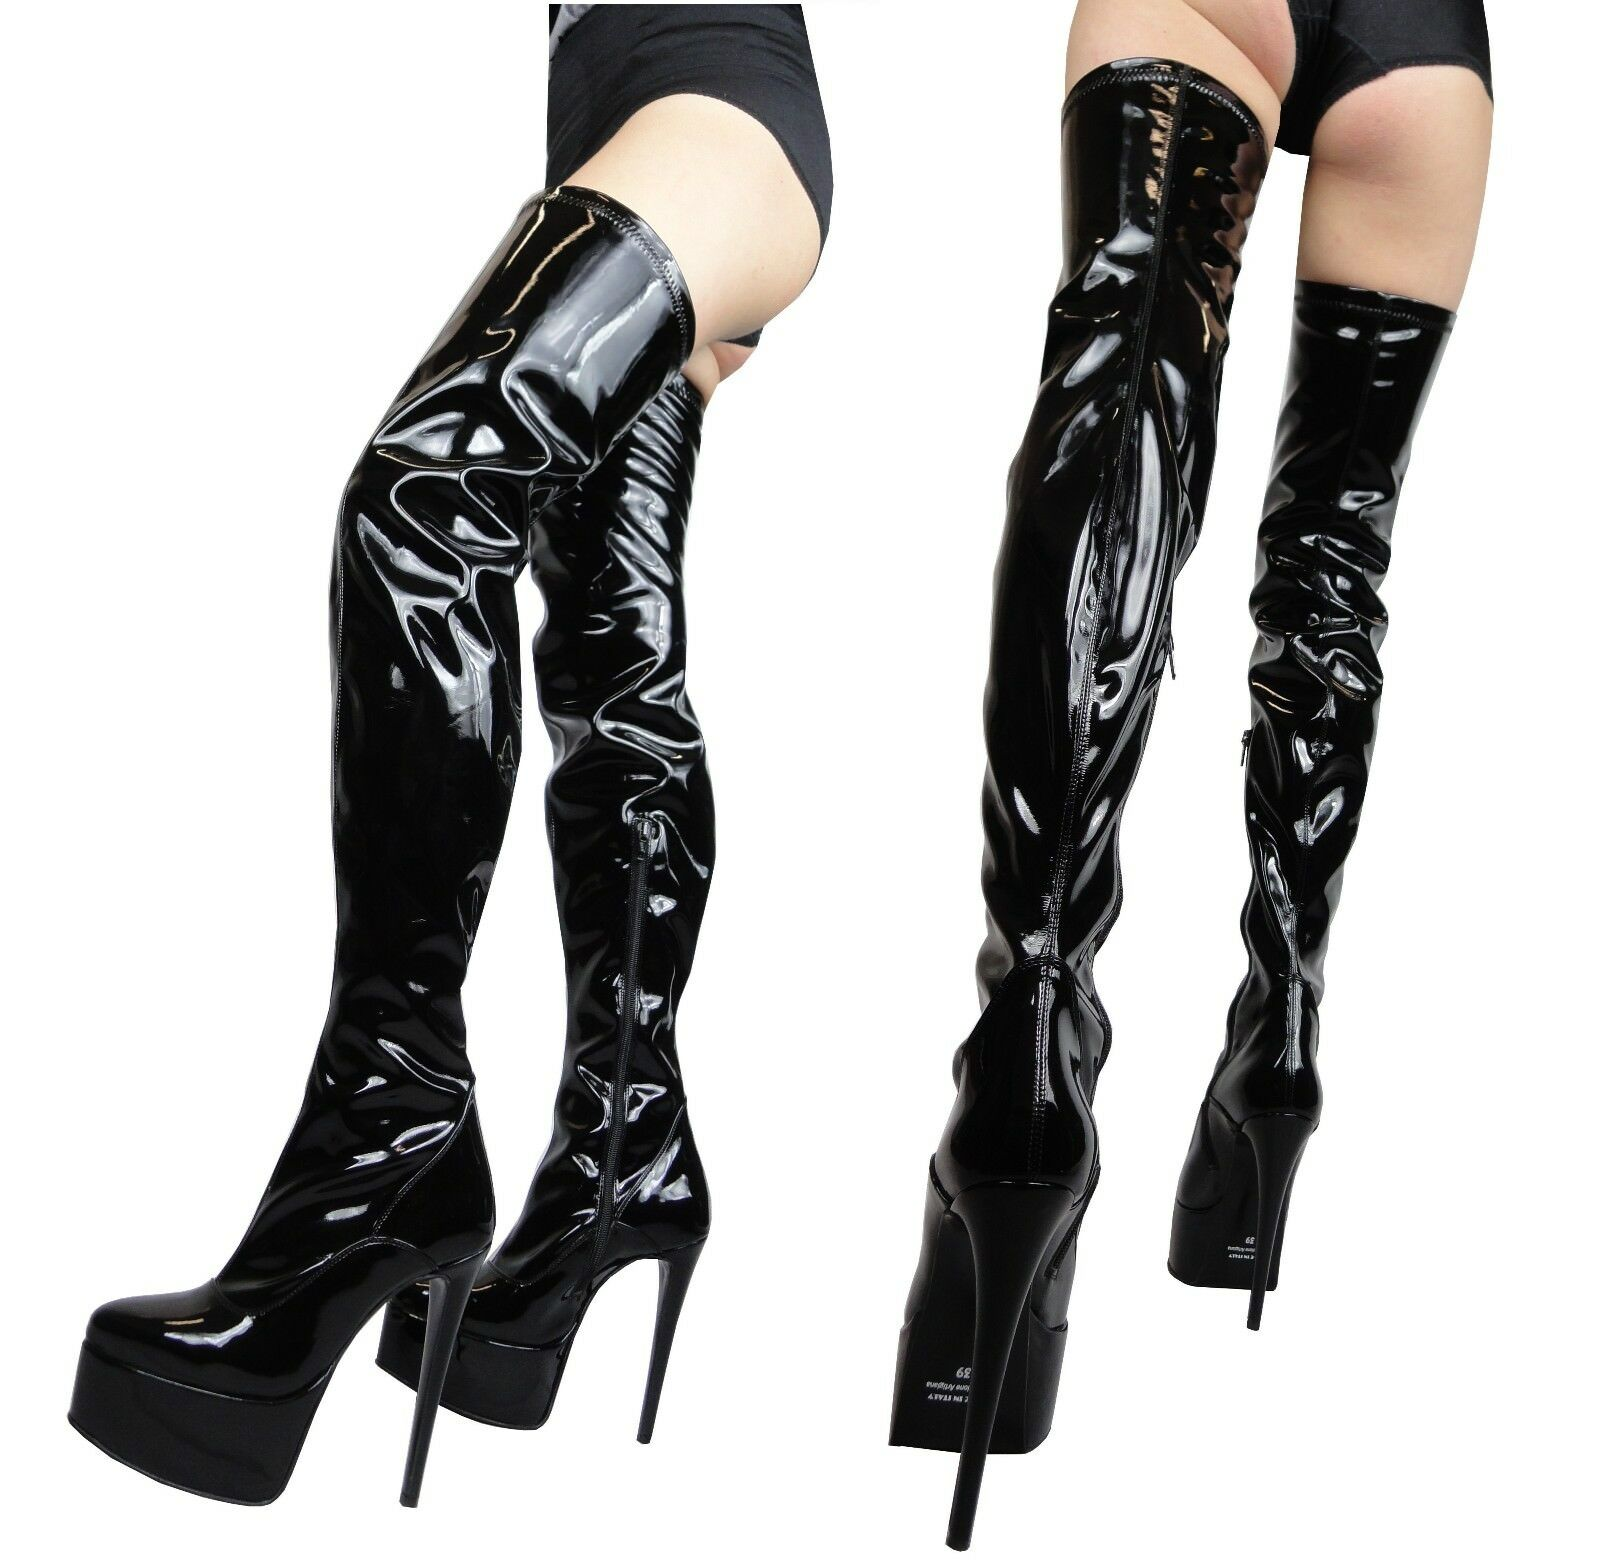 GIOHEL PLATFORM OVERKNEE READY STIEFEL STRETCH PATENT LEATHER SCHWARZ